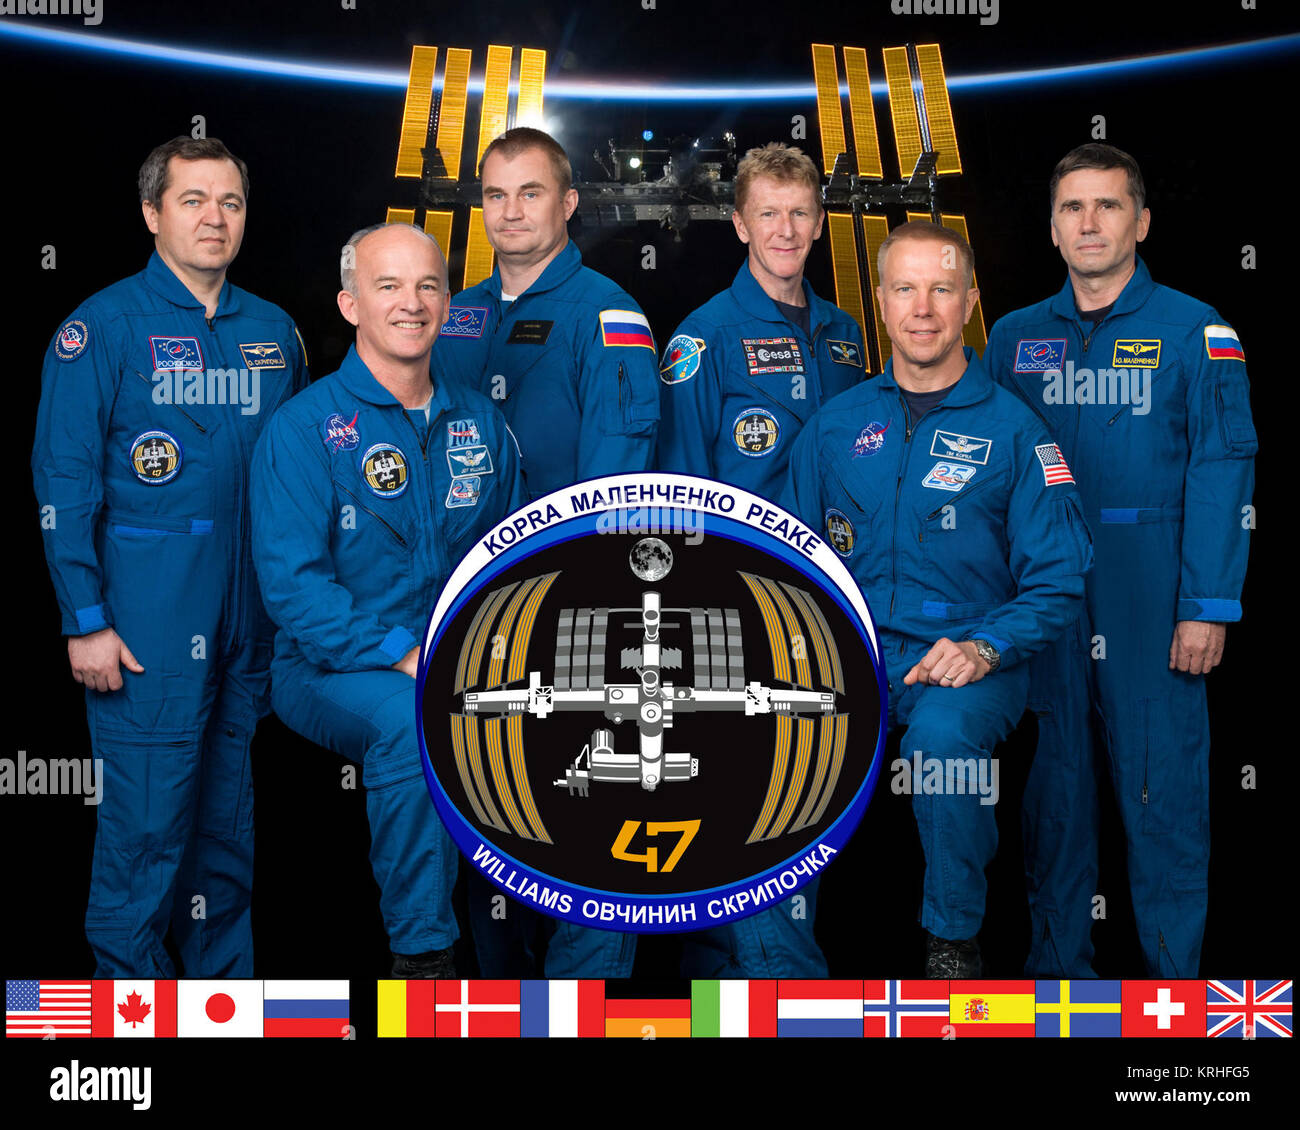 PHOTO DATE: 07-01-15 LOCATION: Bldg. 8, Room 183 - Photo Studio SUBJECT: Official Expedition 47 crew portrait with - Stock Image